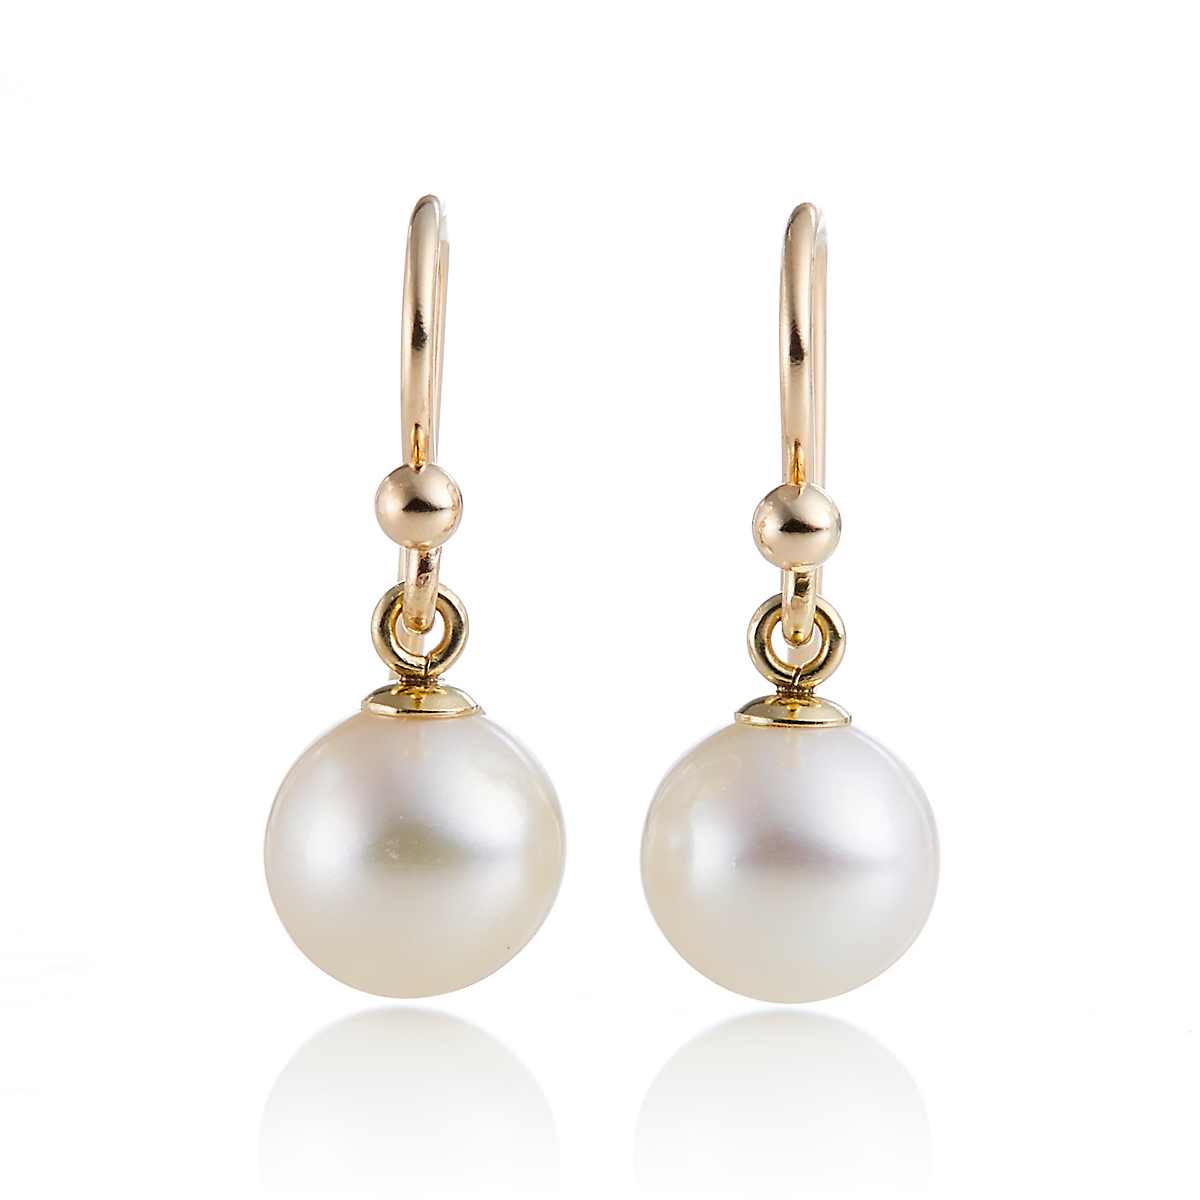 Gump's 8mm Freshwater Pearl Drop Earrings